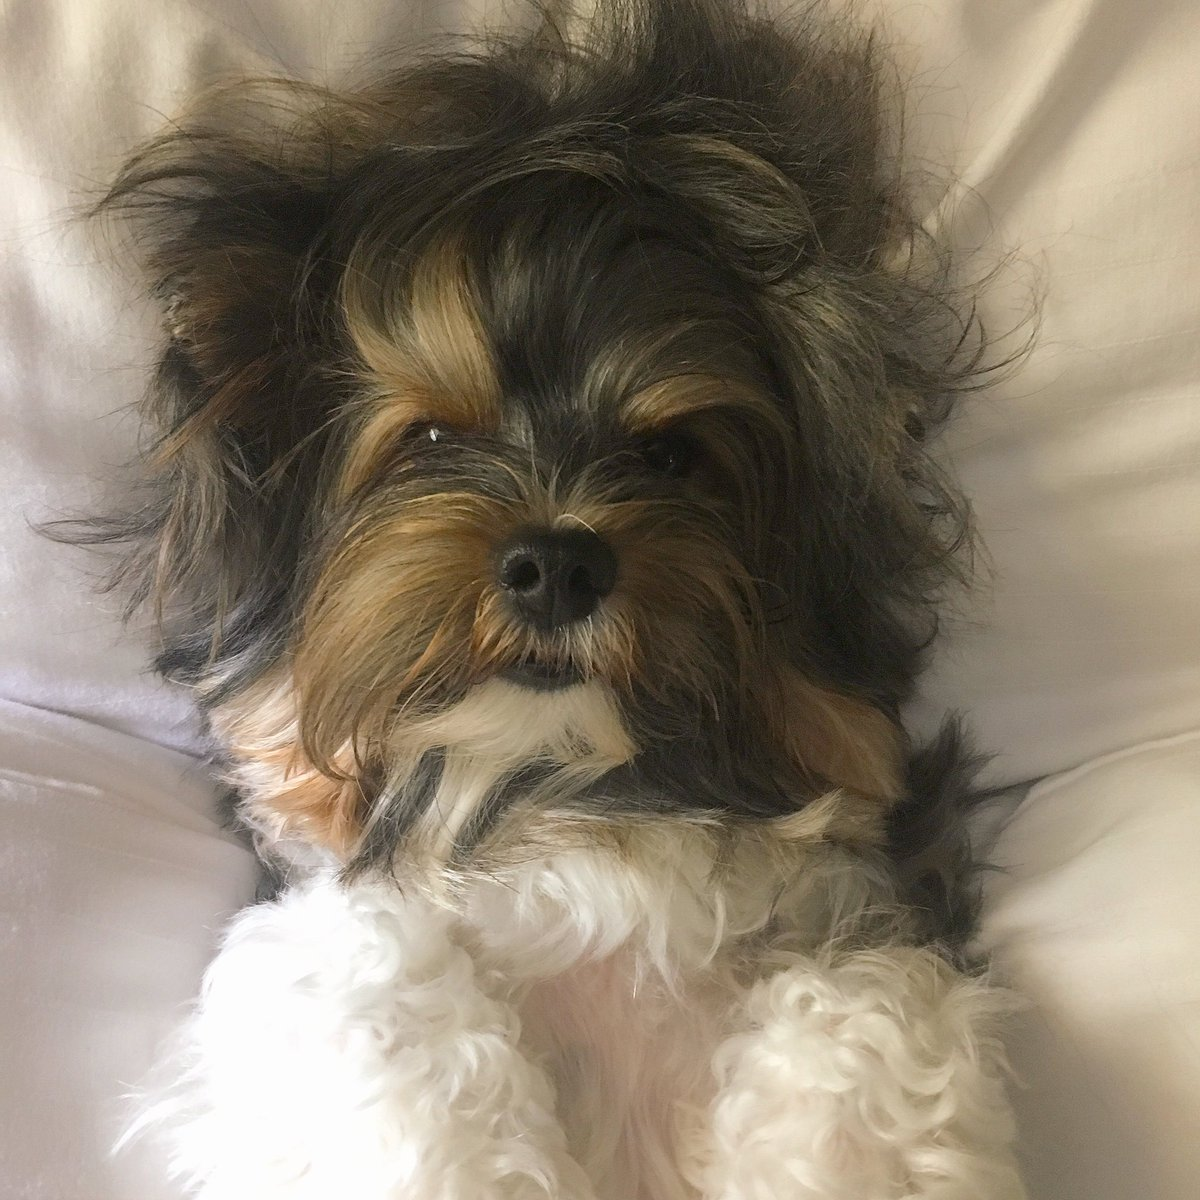 Lead with love the rest will follow, if not today then certainly tomorrow. It's the Philosophy of FattieButters. #犬 https://t.co/4NrCLKxQTs